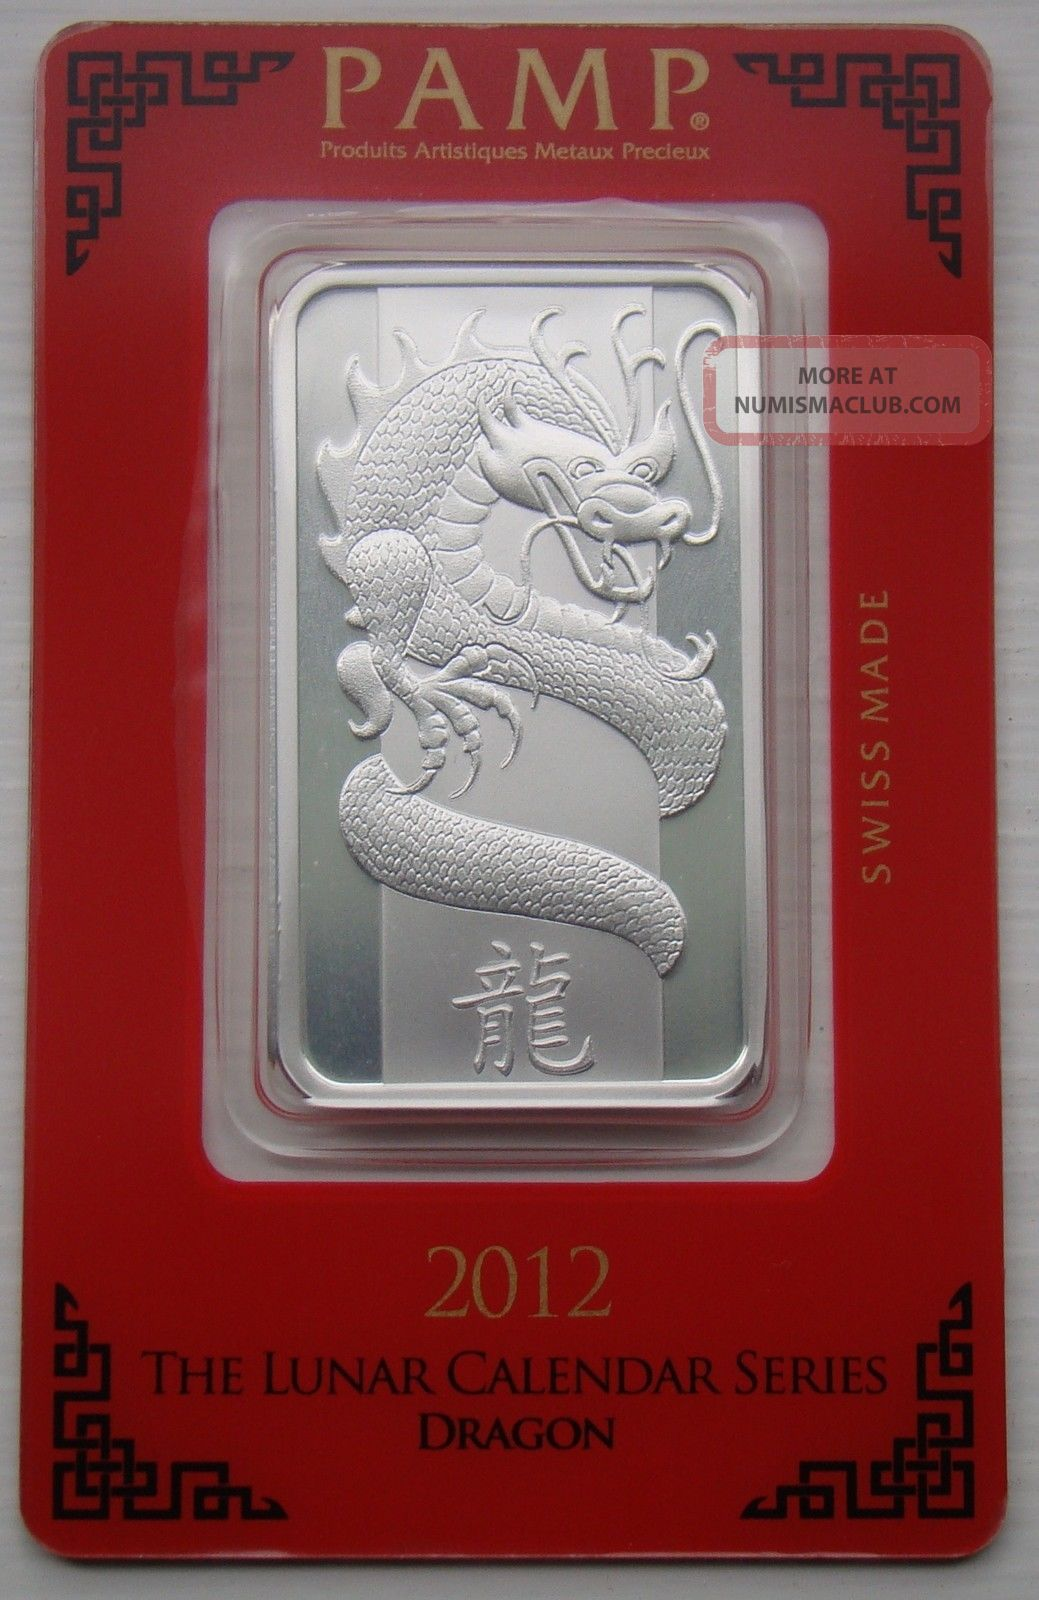 Solid Silver Bar 1 Troy Oz 2012 Year Of Dragon Pamp Suisse